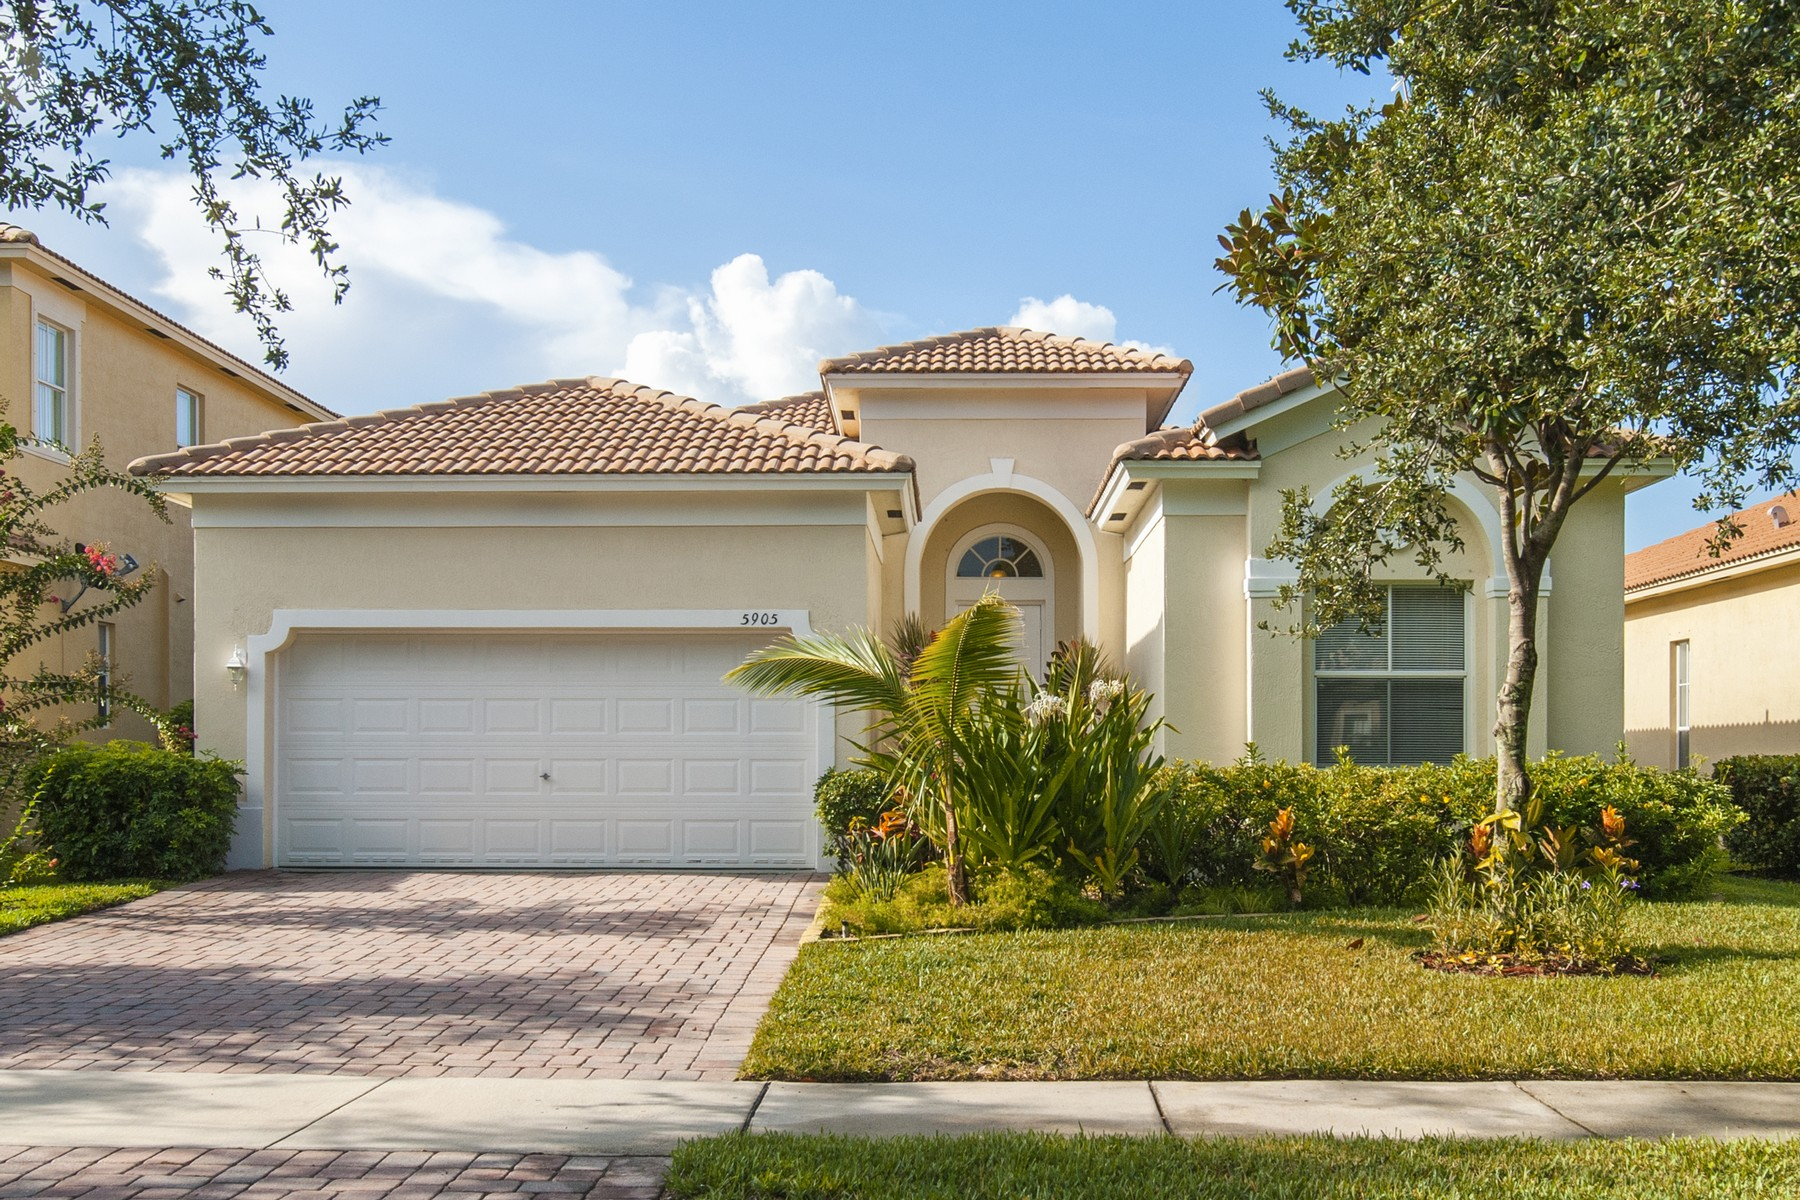 Single Family Home for Sale at Beautfully Maintained Home in Resort Style Gated Community 5905 Spring Lake Terrace Fort Pierce, Florida 34951 United States